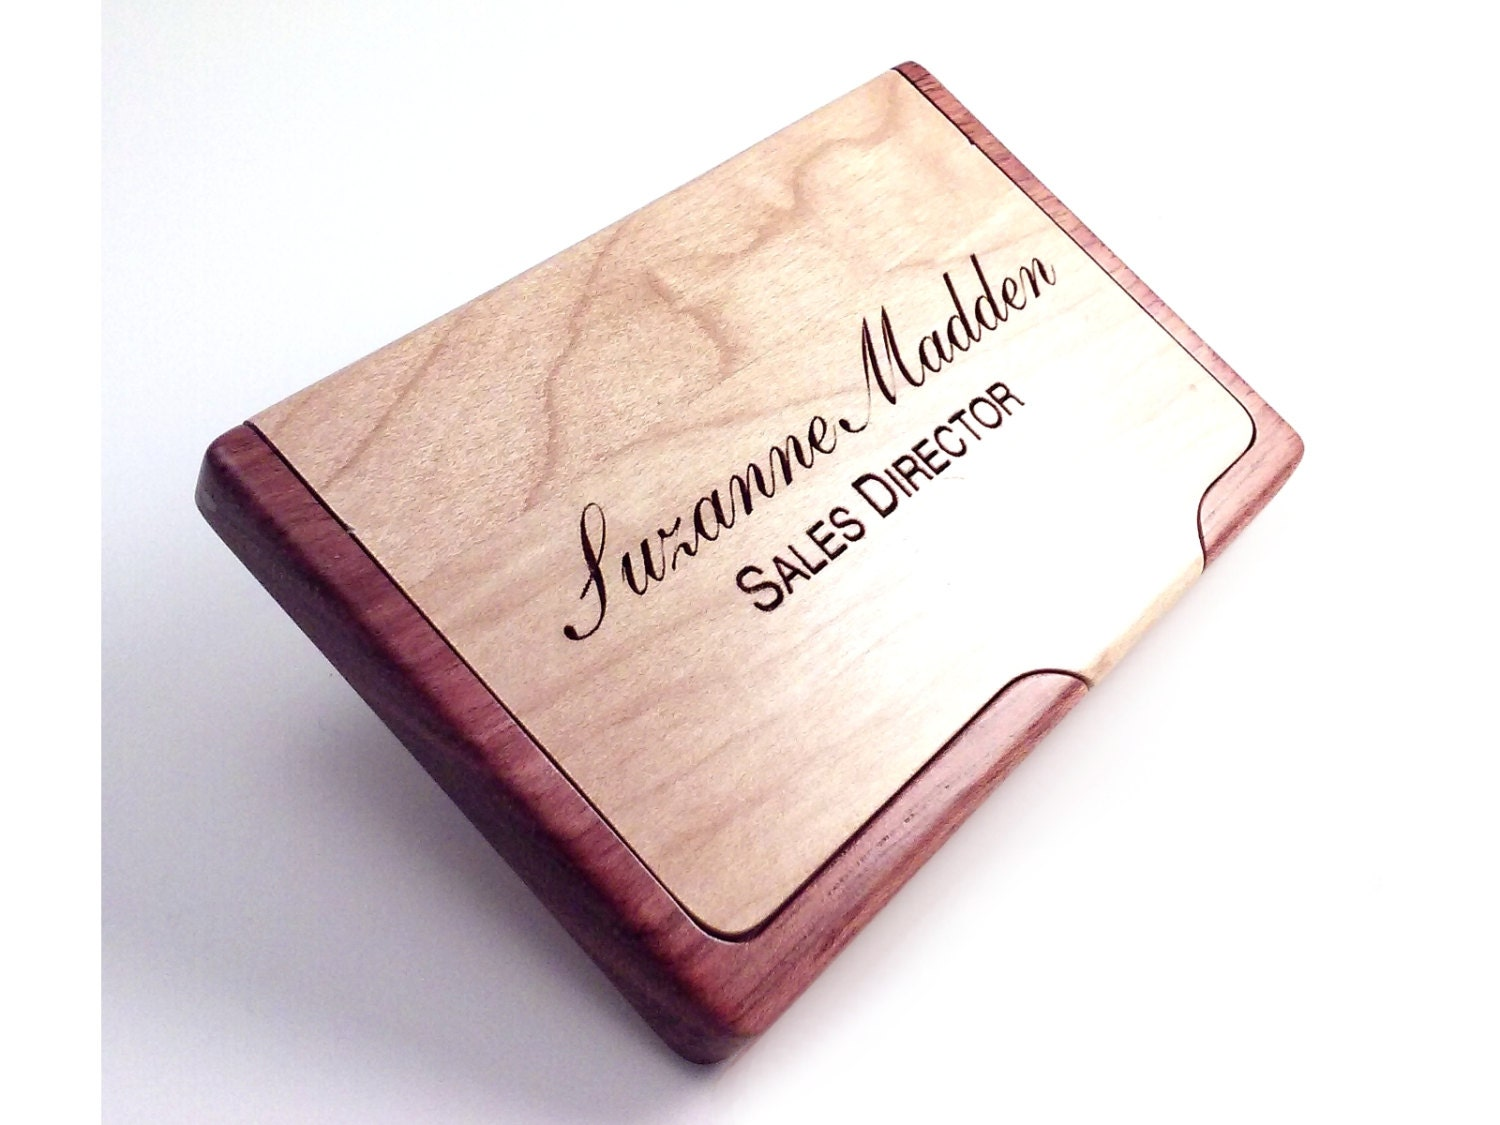 Engraved Wood Business Card Holder personalized with your name